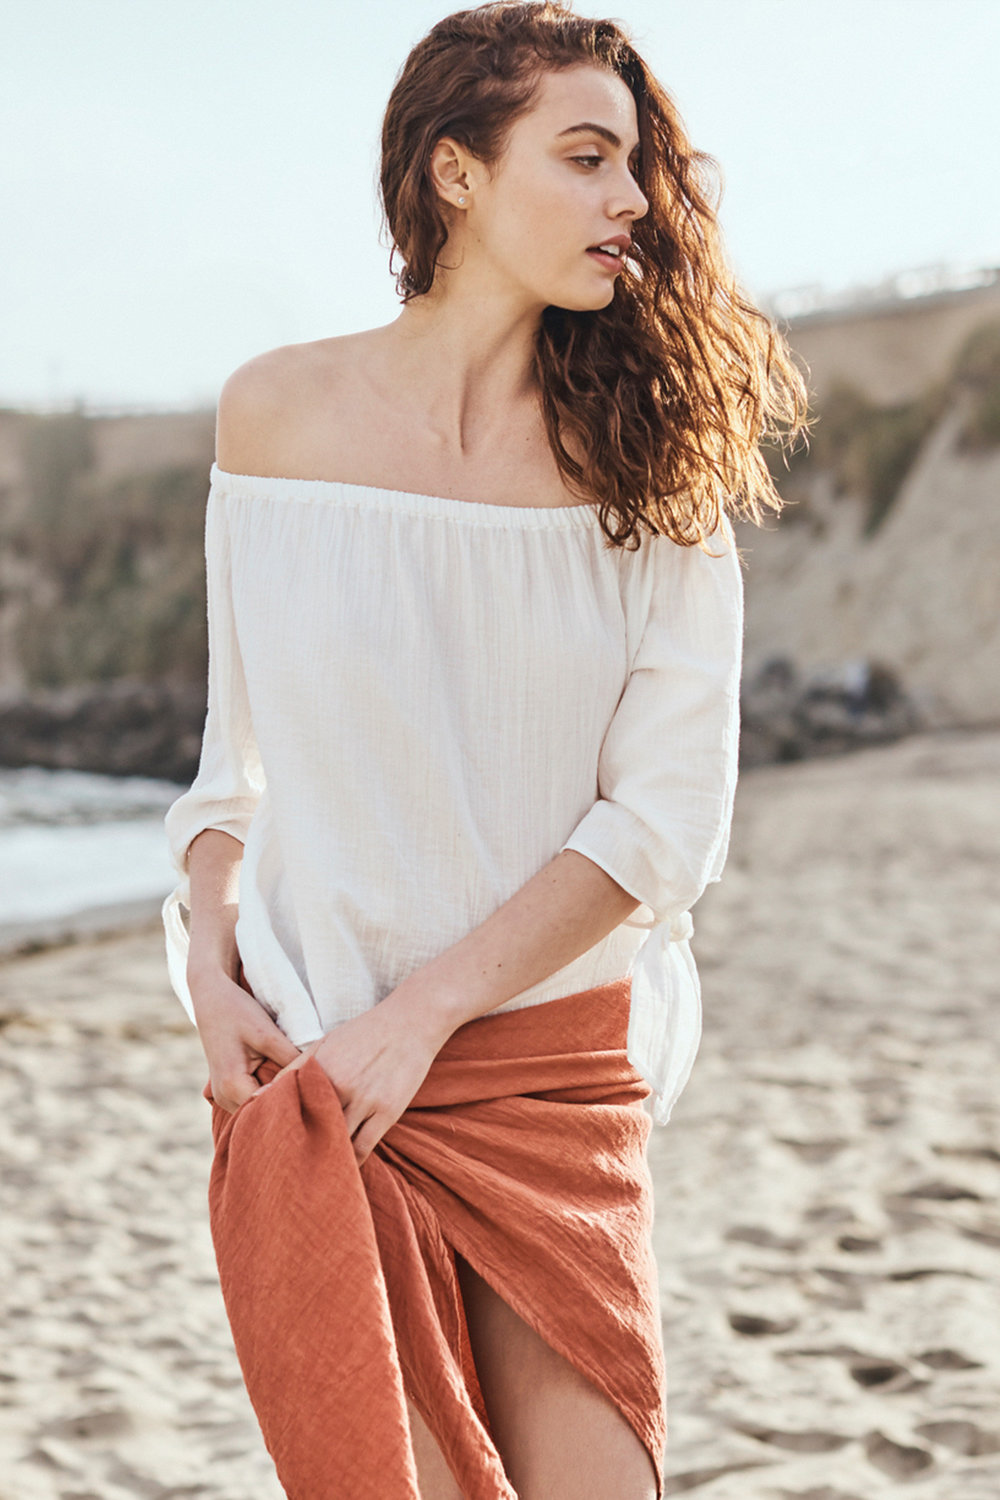 100% cotton cassidy top by   Amour vert